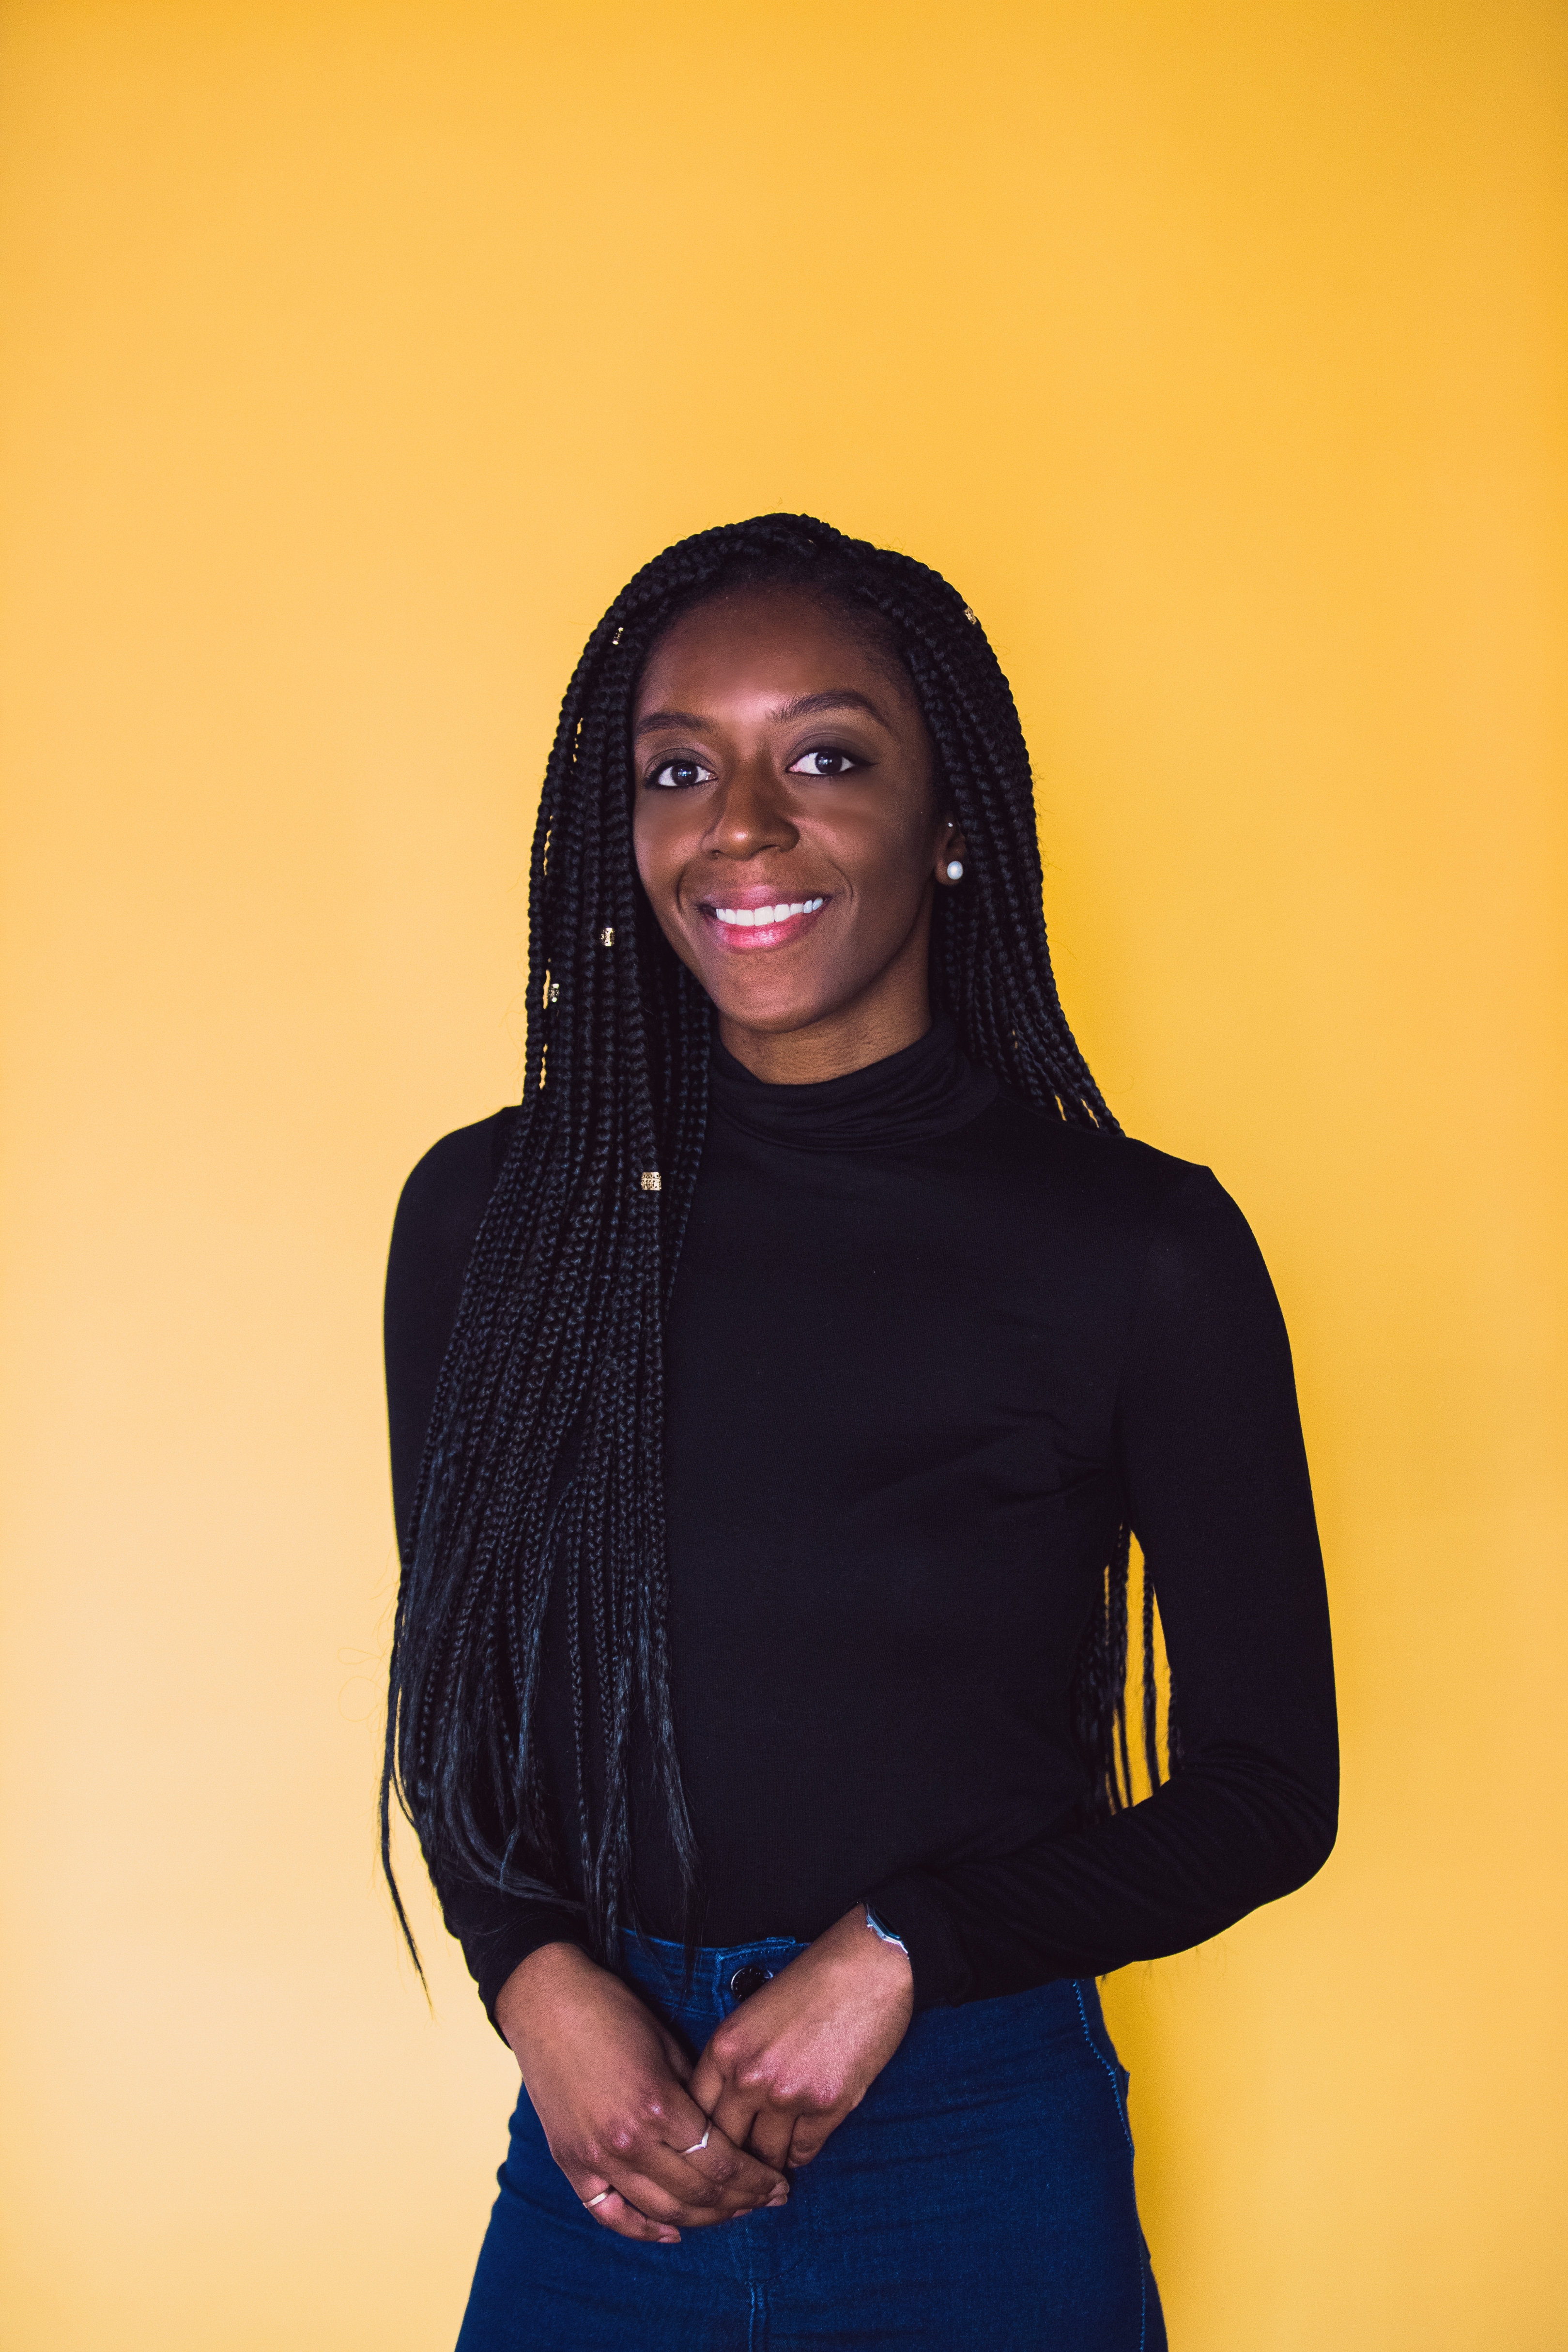 young girl (Afua Deborah) standing in front of yellow background